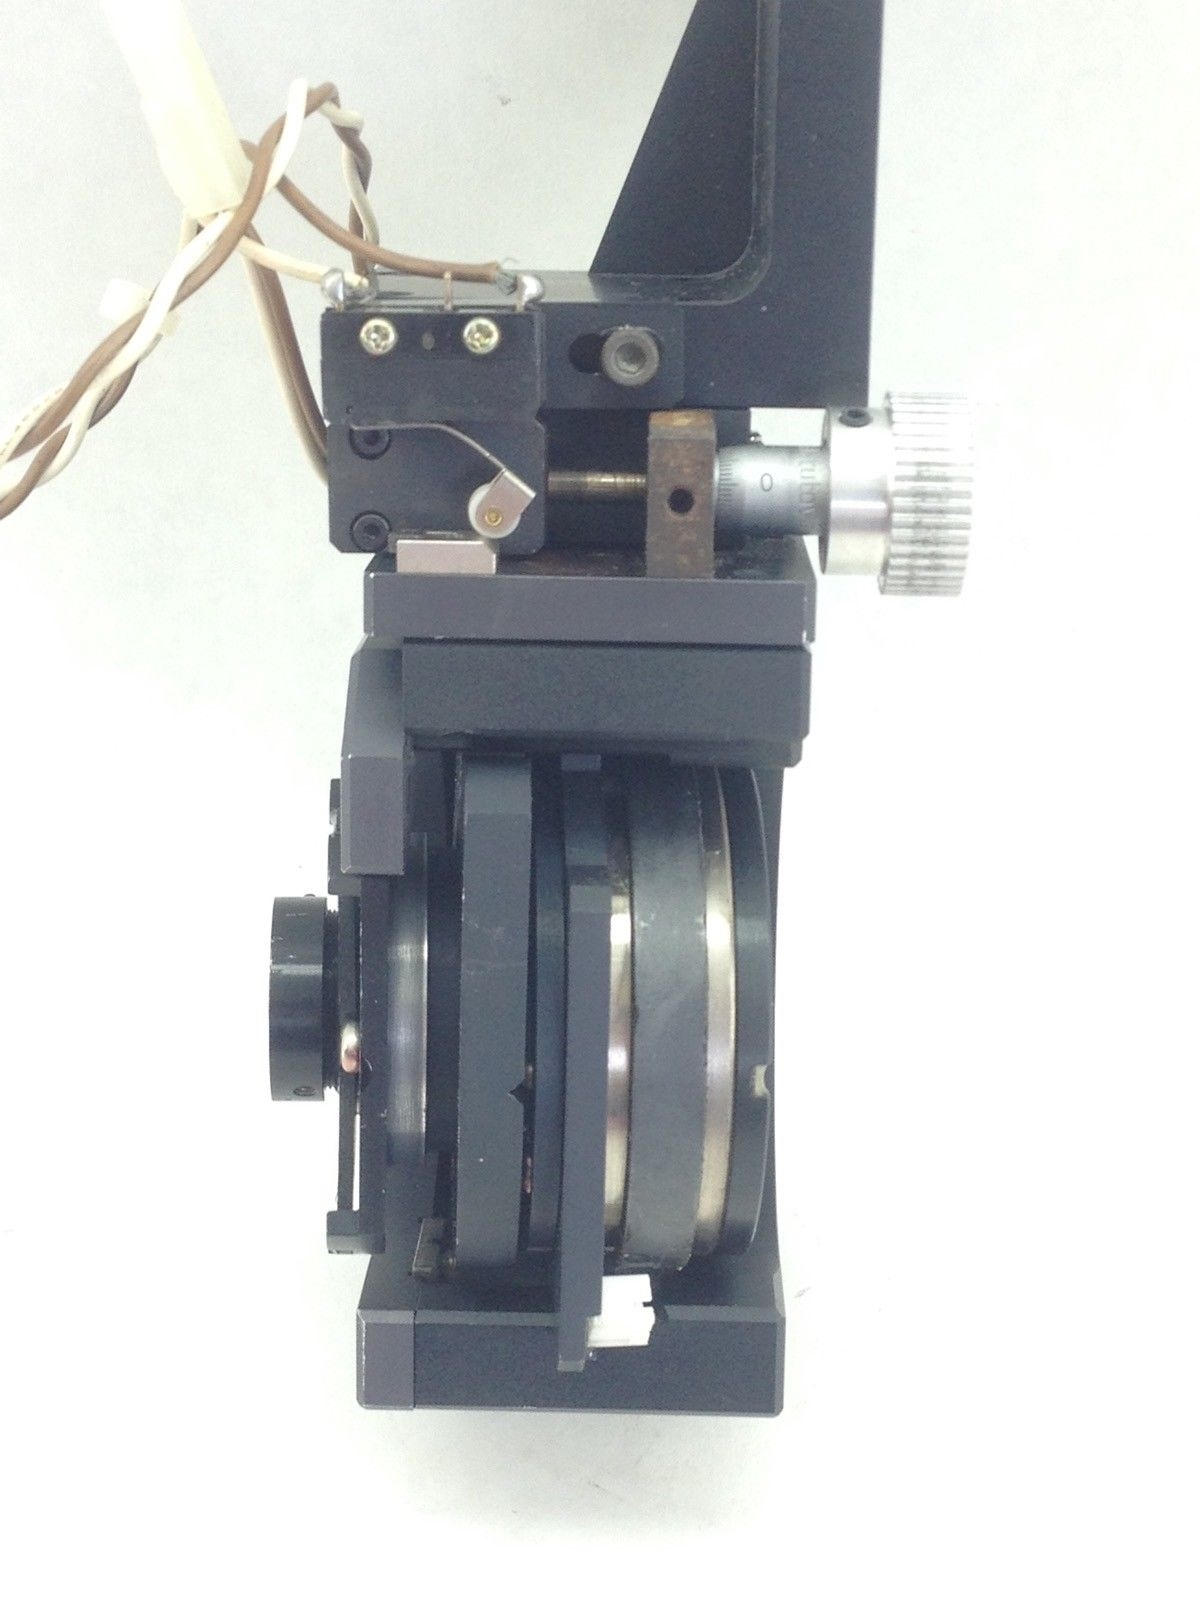 MITUTOY 148-205 MOTORIZED POSITIONING TABLE GRADUATED MICROMETER ASSY (H330) 3